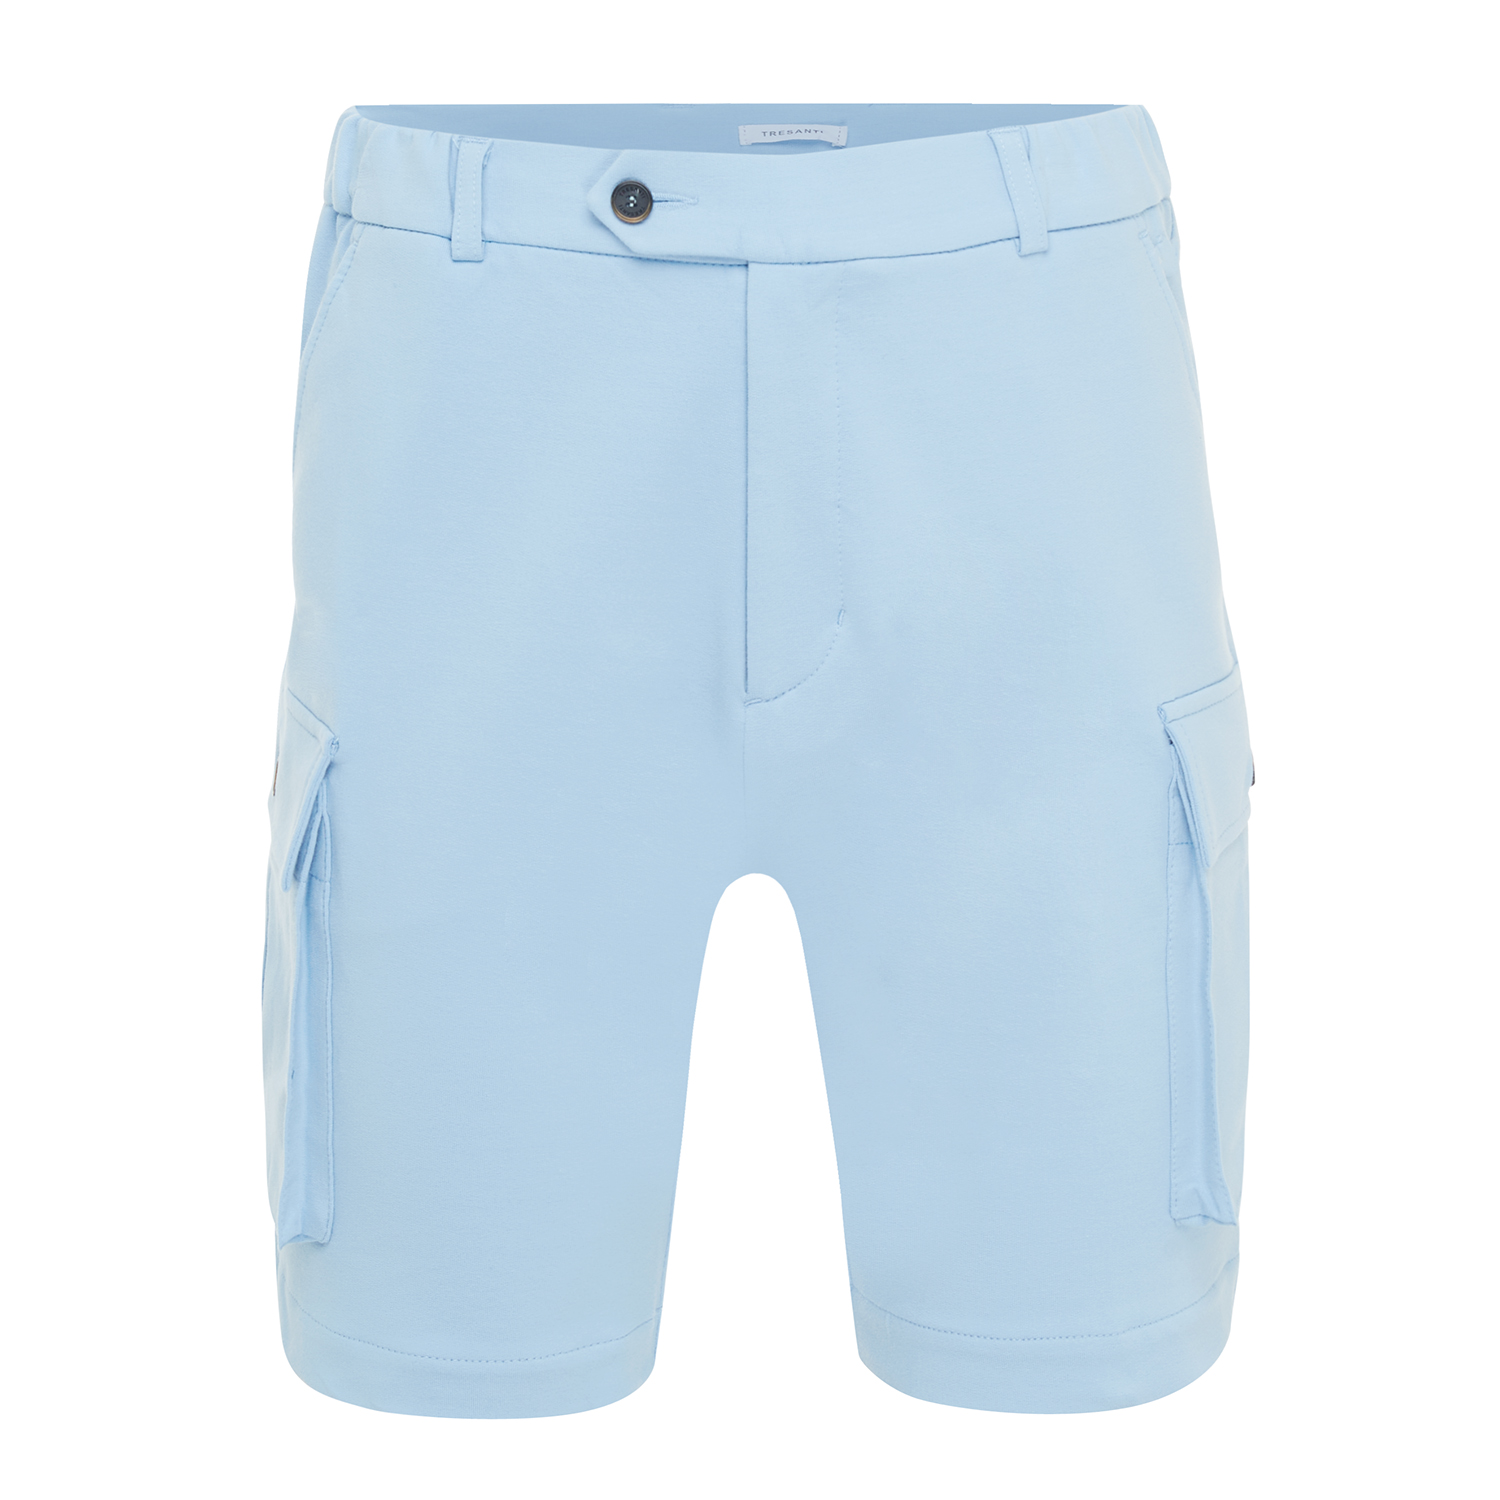 Morgan | Shorts with cargo pockets light blue